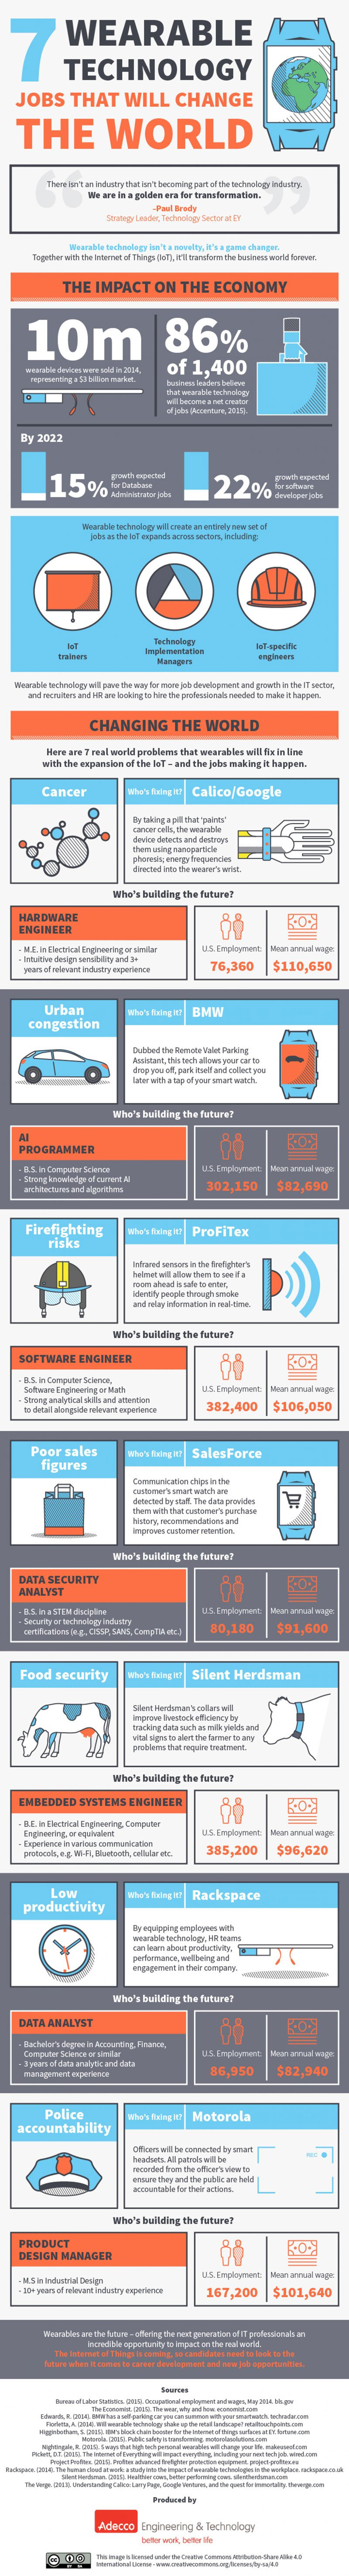 7-wearable-technology-jobs